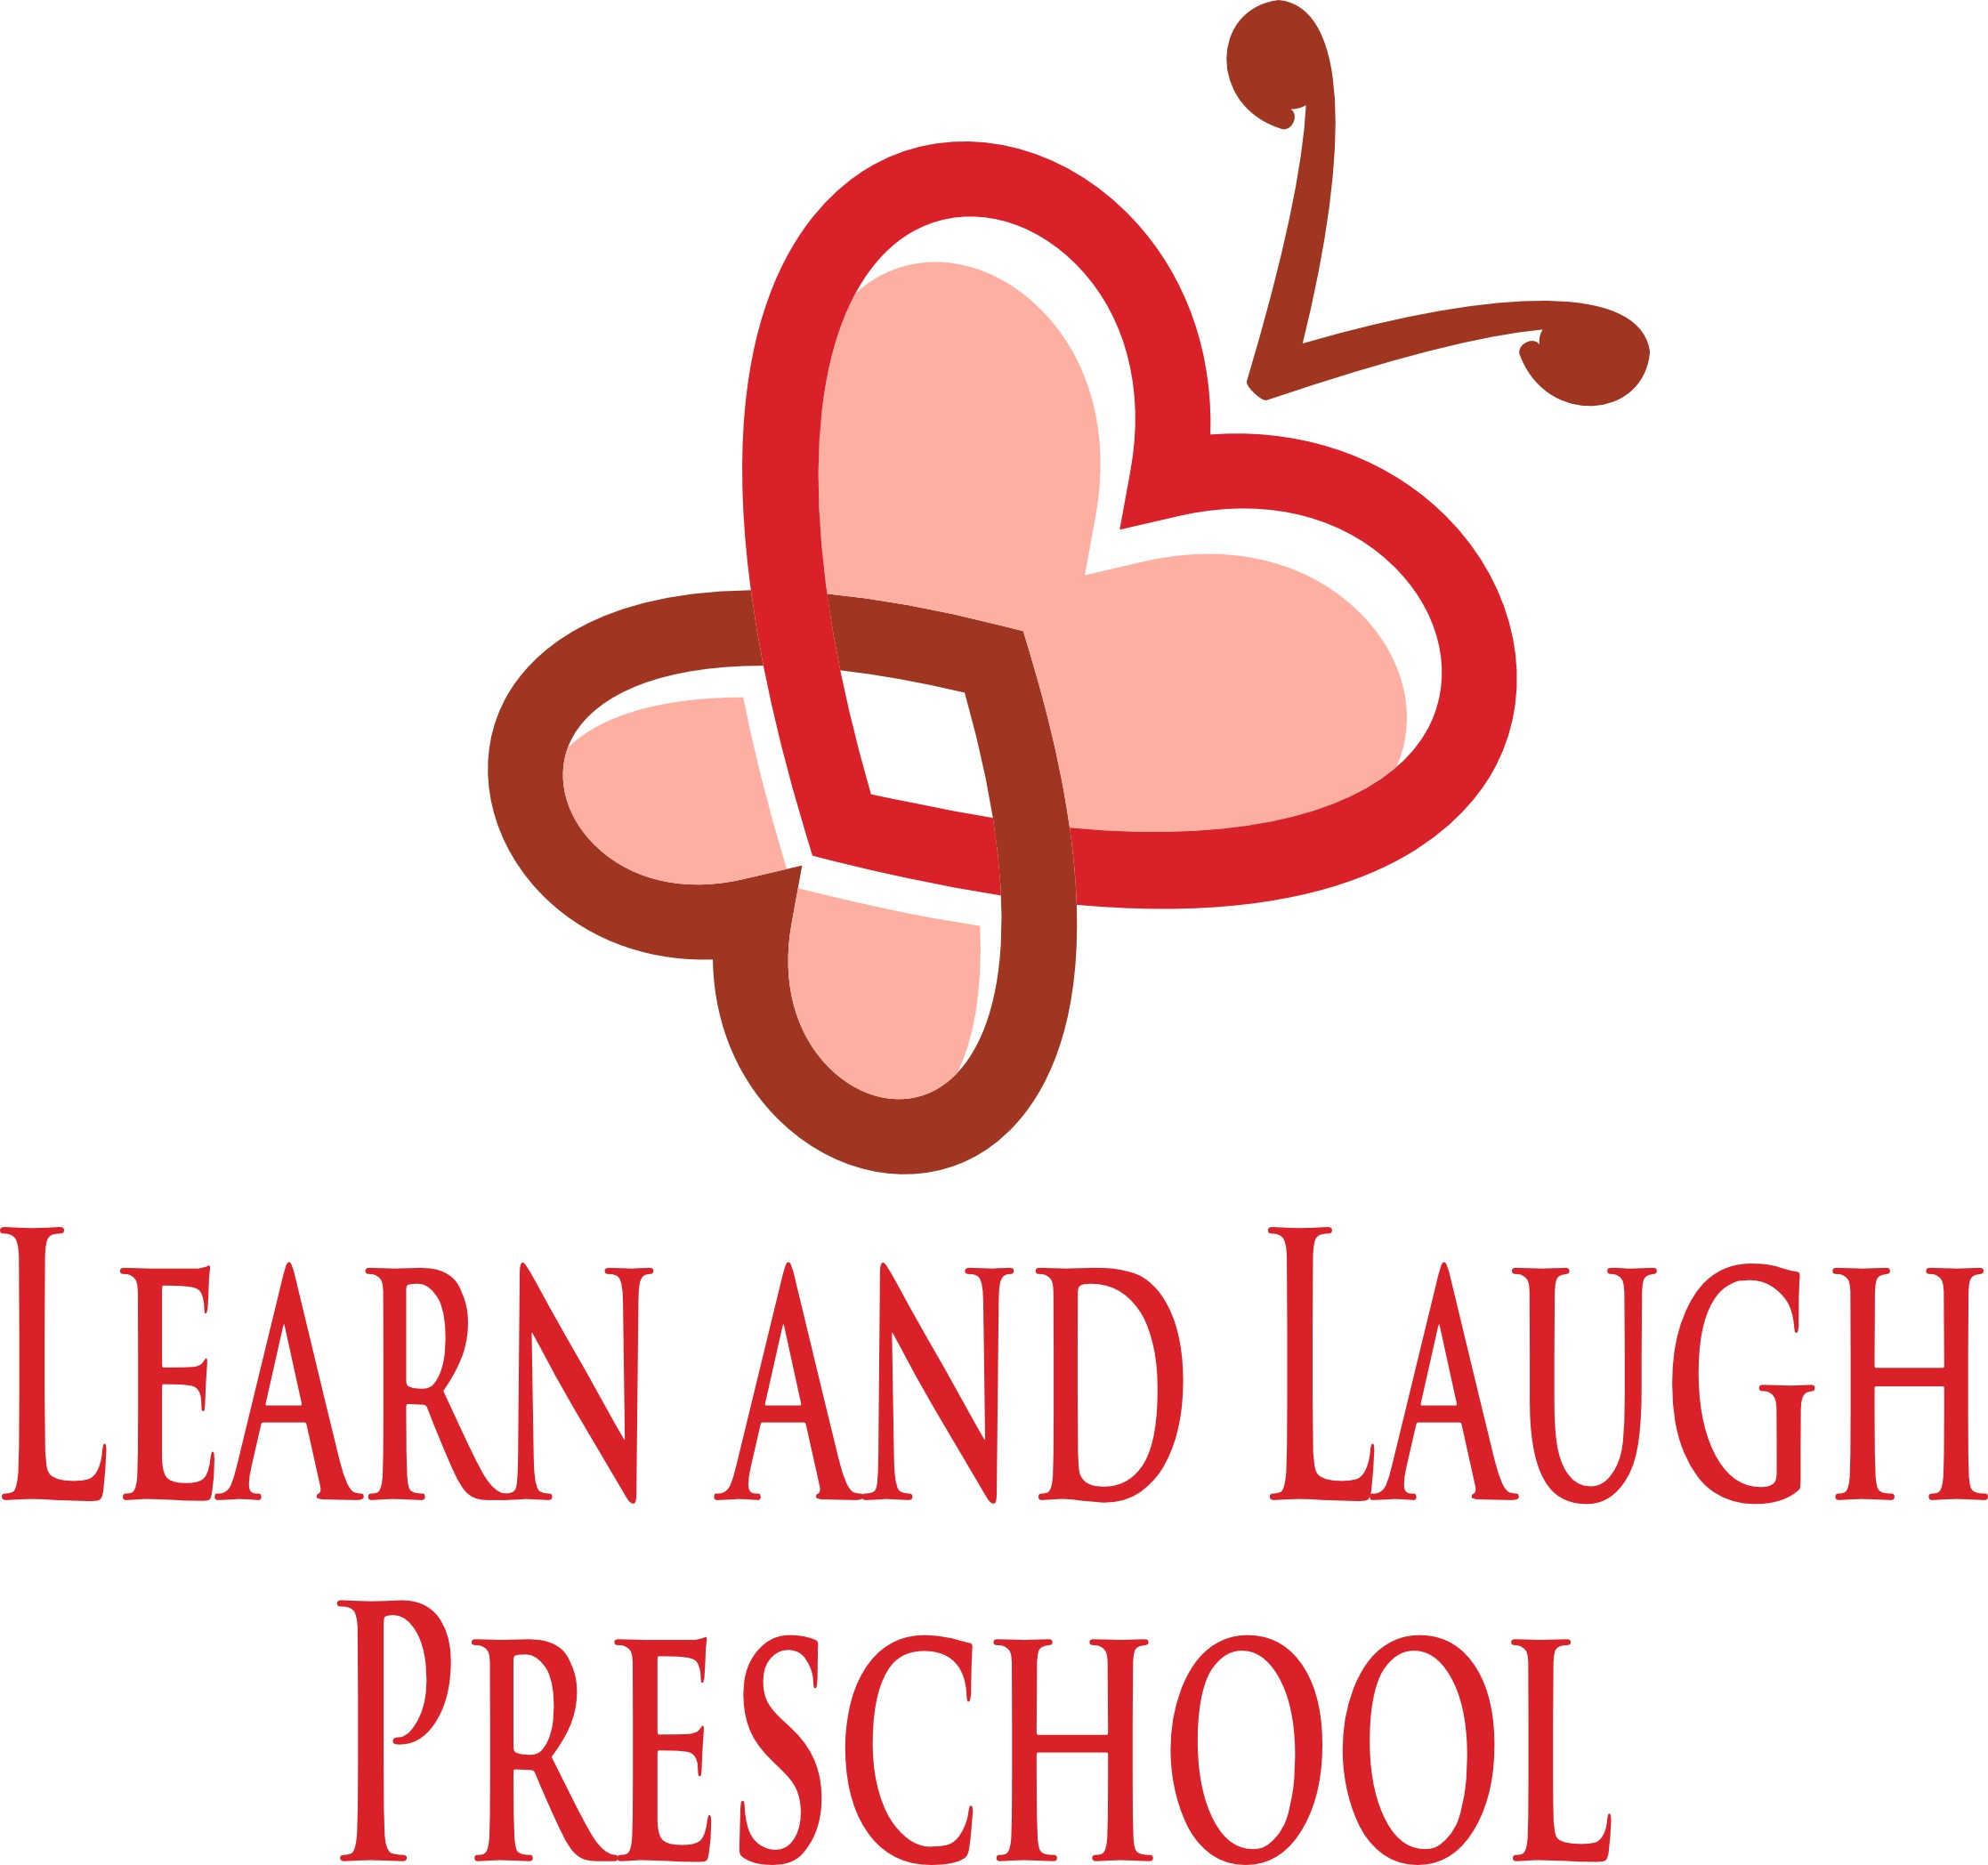 learnandlaughpreschool